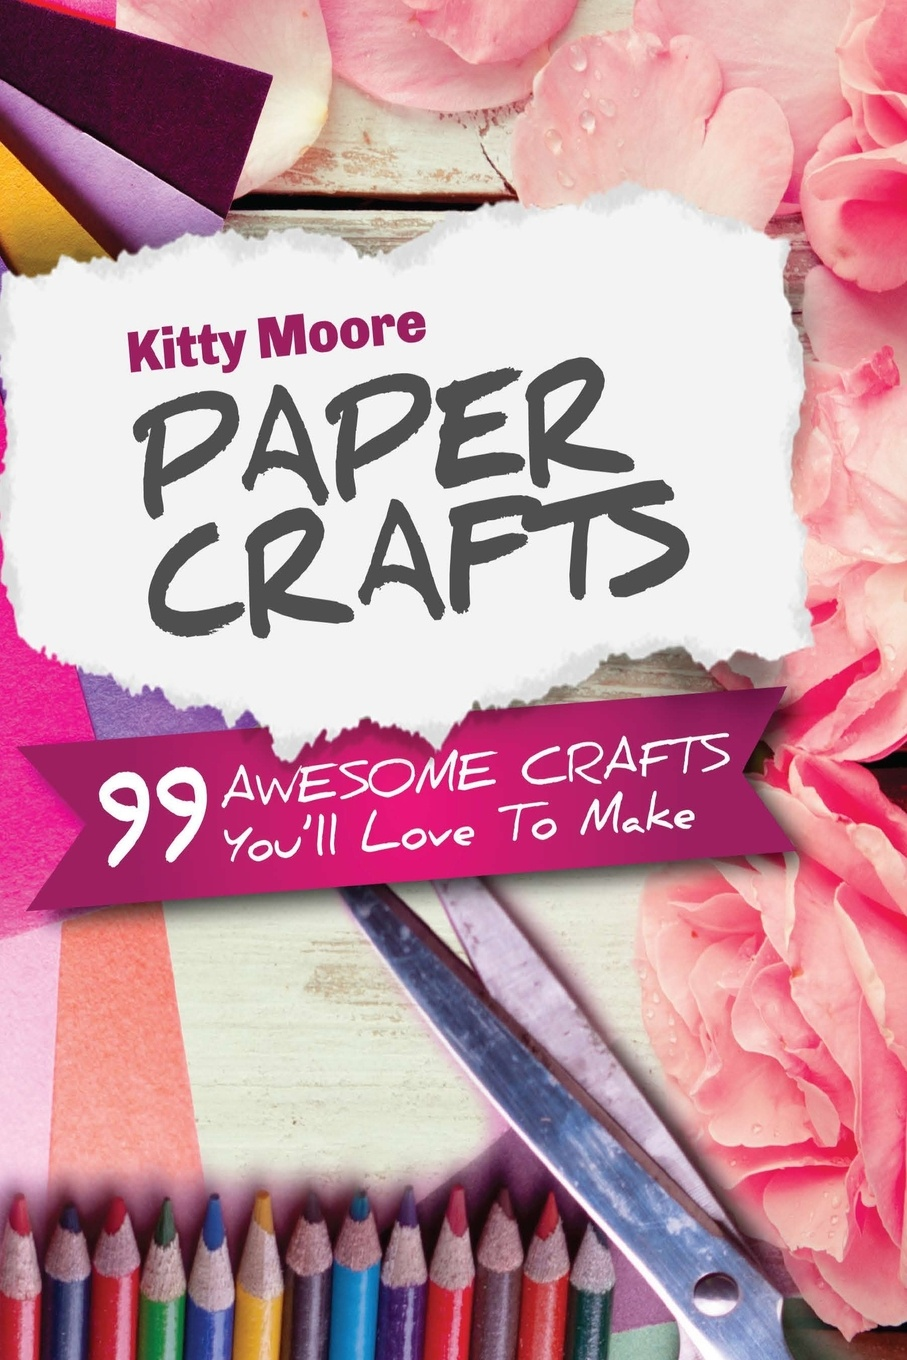 Kitty Moore Paper Crafts (5th Edition). 99 Awesome Crafts You'll Love To Make! paper crafts a maker